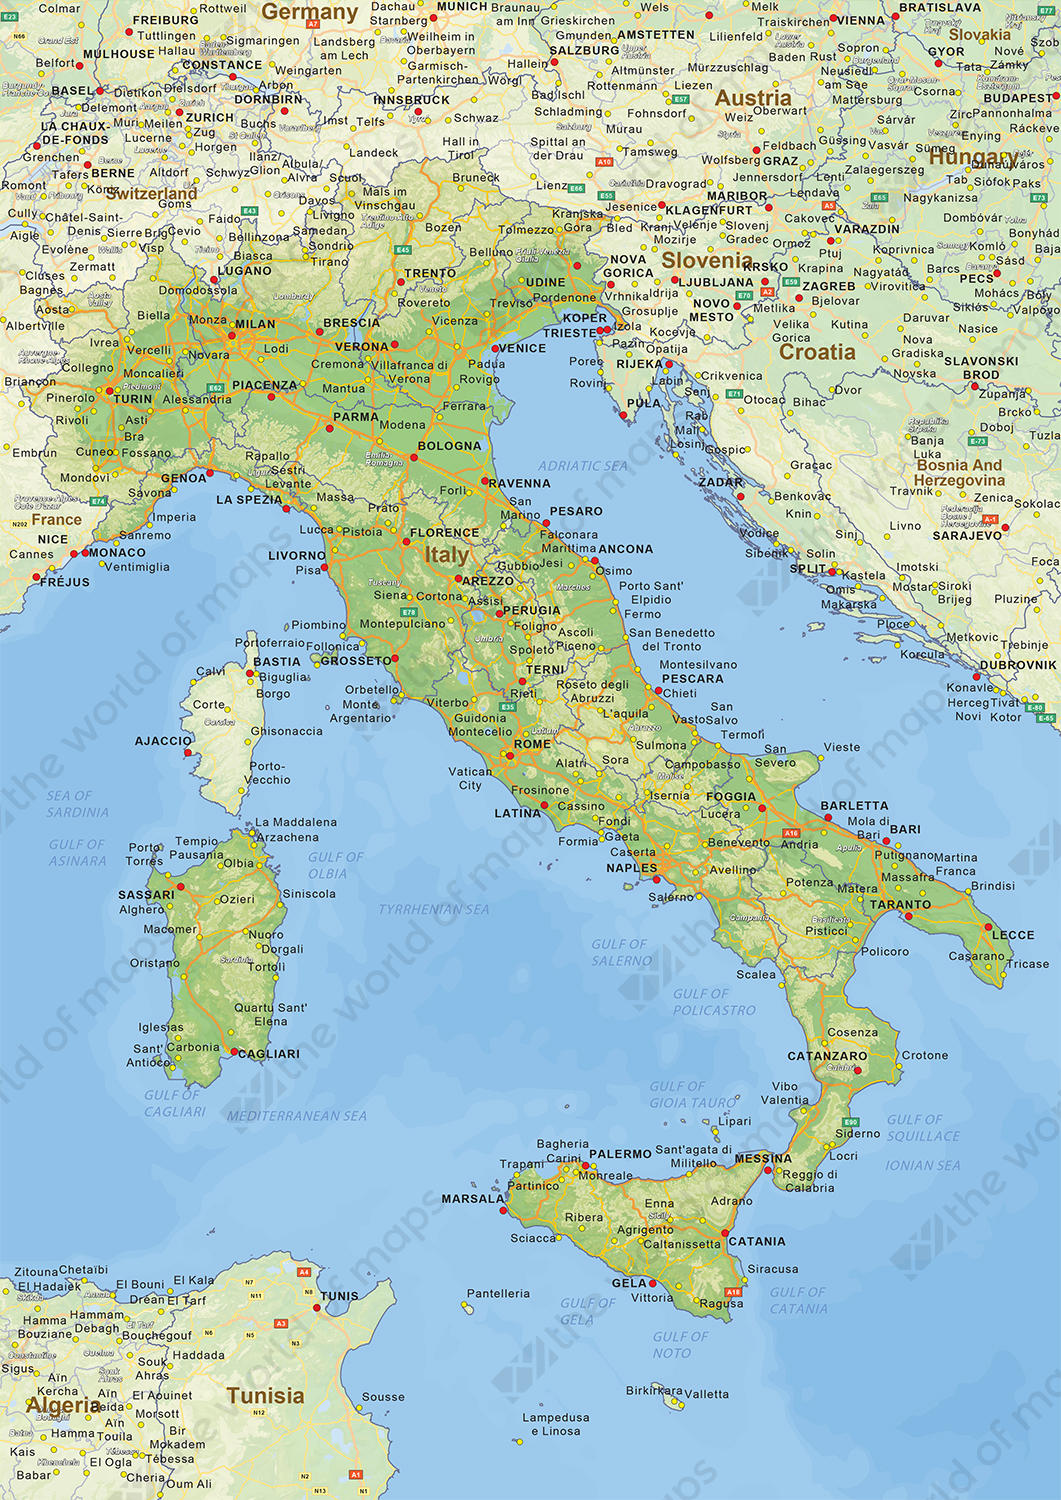 Digital physical map of Italy 1443 The World of Mapscom